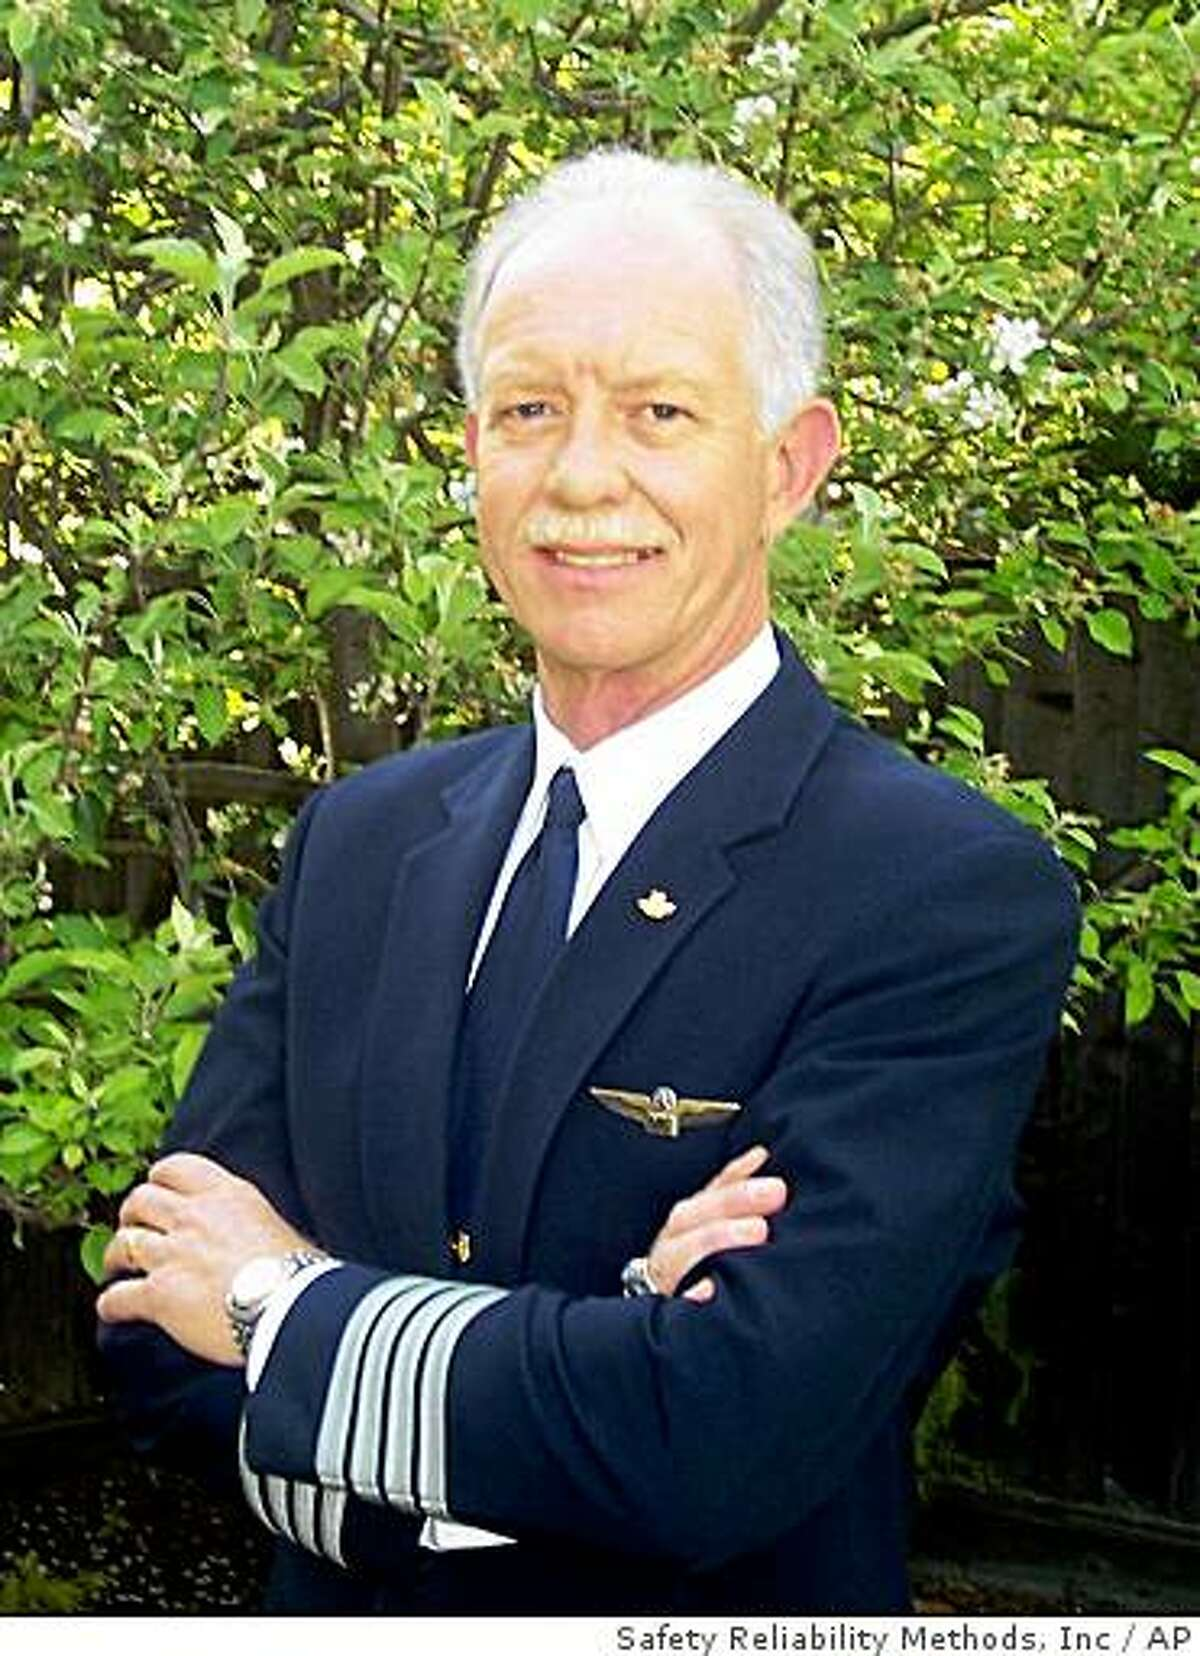 In this image taken from the website of Safety Reliability Methods, Inc., US Airways pilot Chelsey B. Sullenberger III is shown. An official speaking on condition of anonymity because the investigation was still ongoing, identified Sullenberger as the pilot of US Airways Flight 1549, which crash landed in the Hudson River in New York Thursday, Jan. 15, 2009, as Chelsey B. Sullenberger III. (AP Photo/Safety Reliability Methods, Inc.)